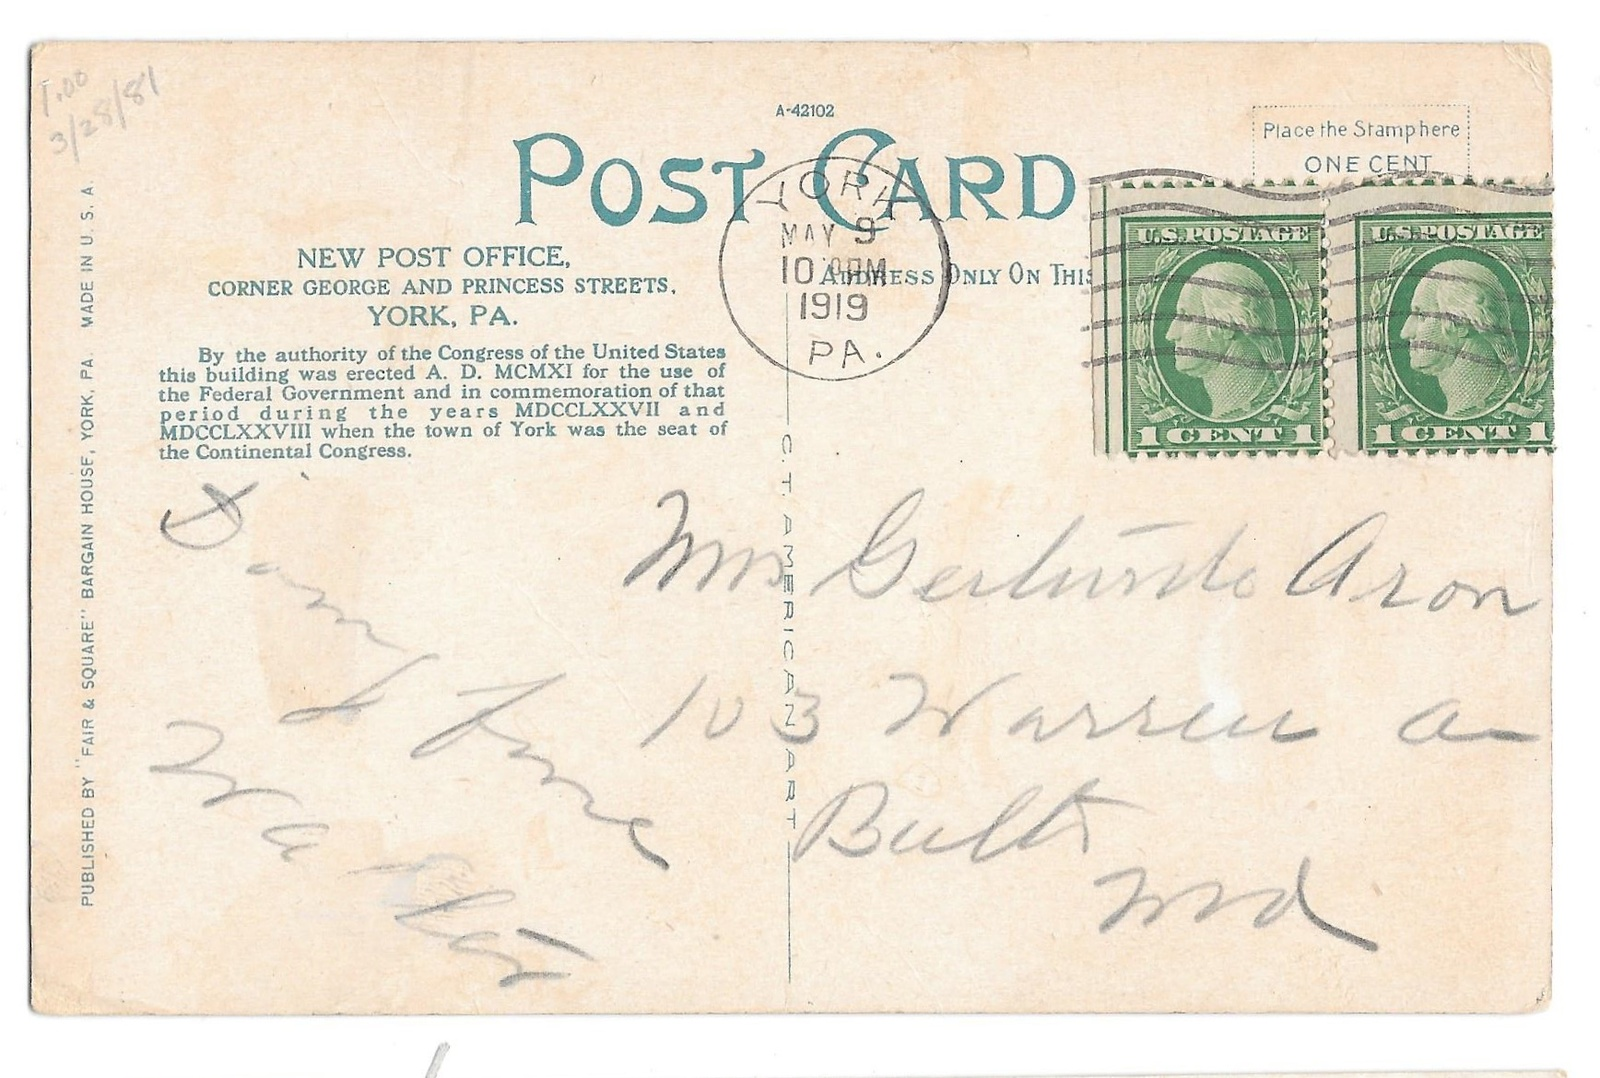 York PA New Post Office Vintage 1919 Fair and Square Postcard